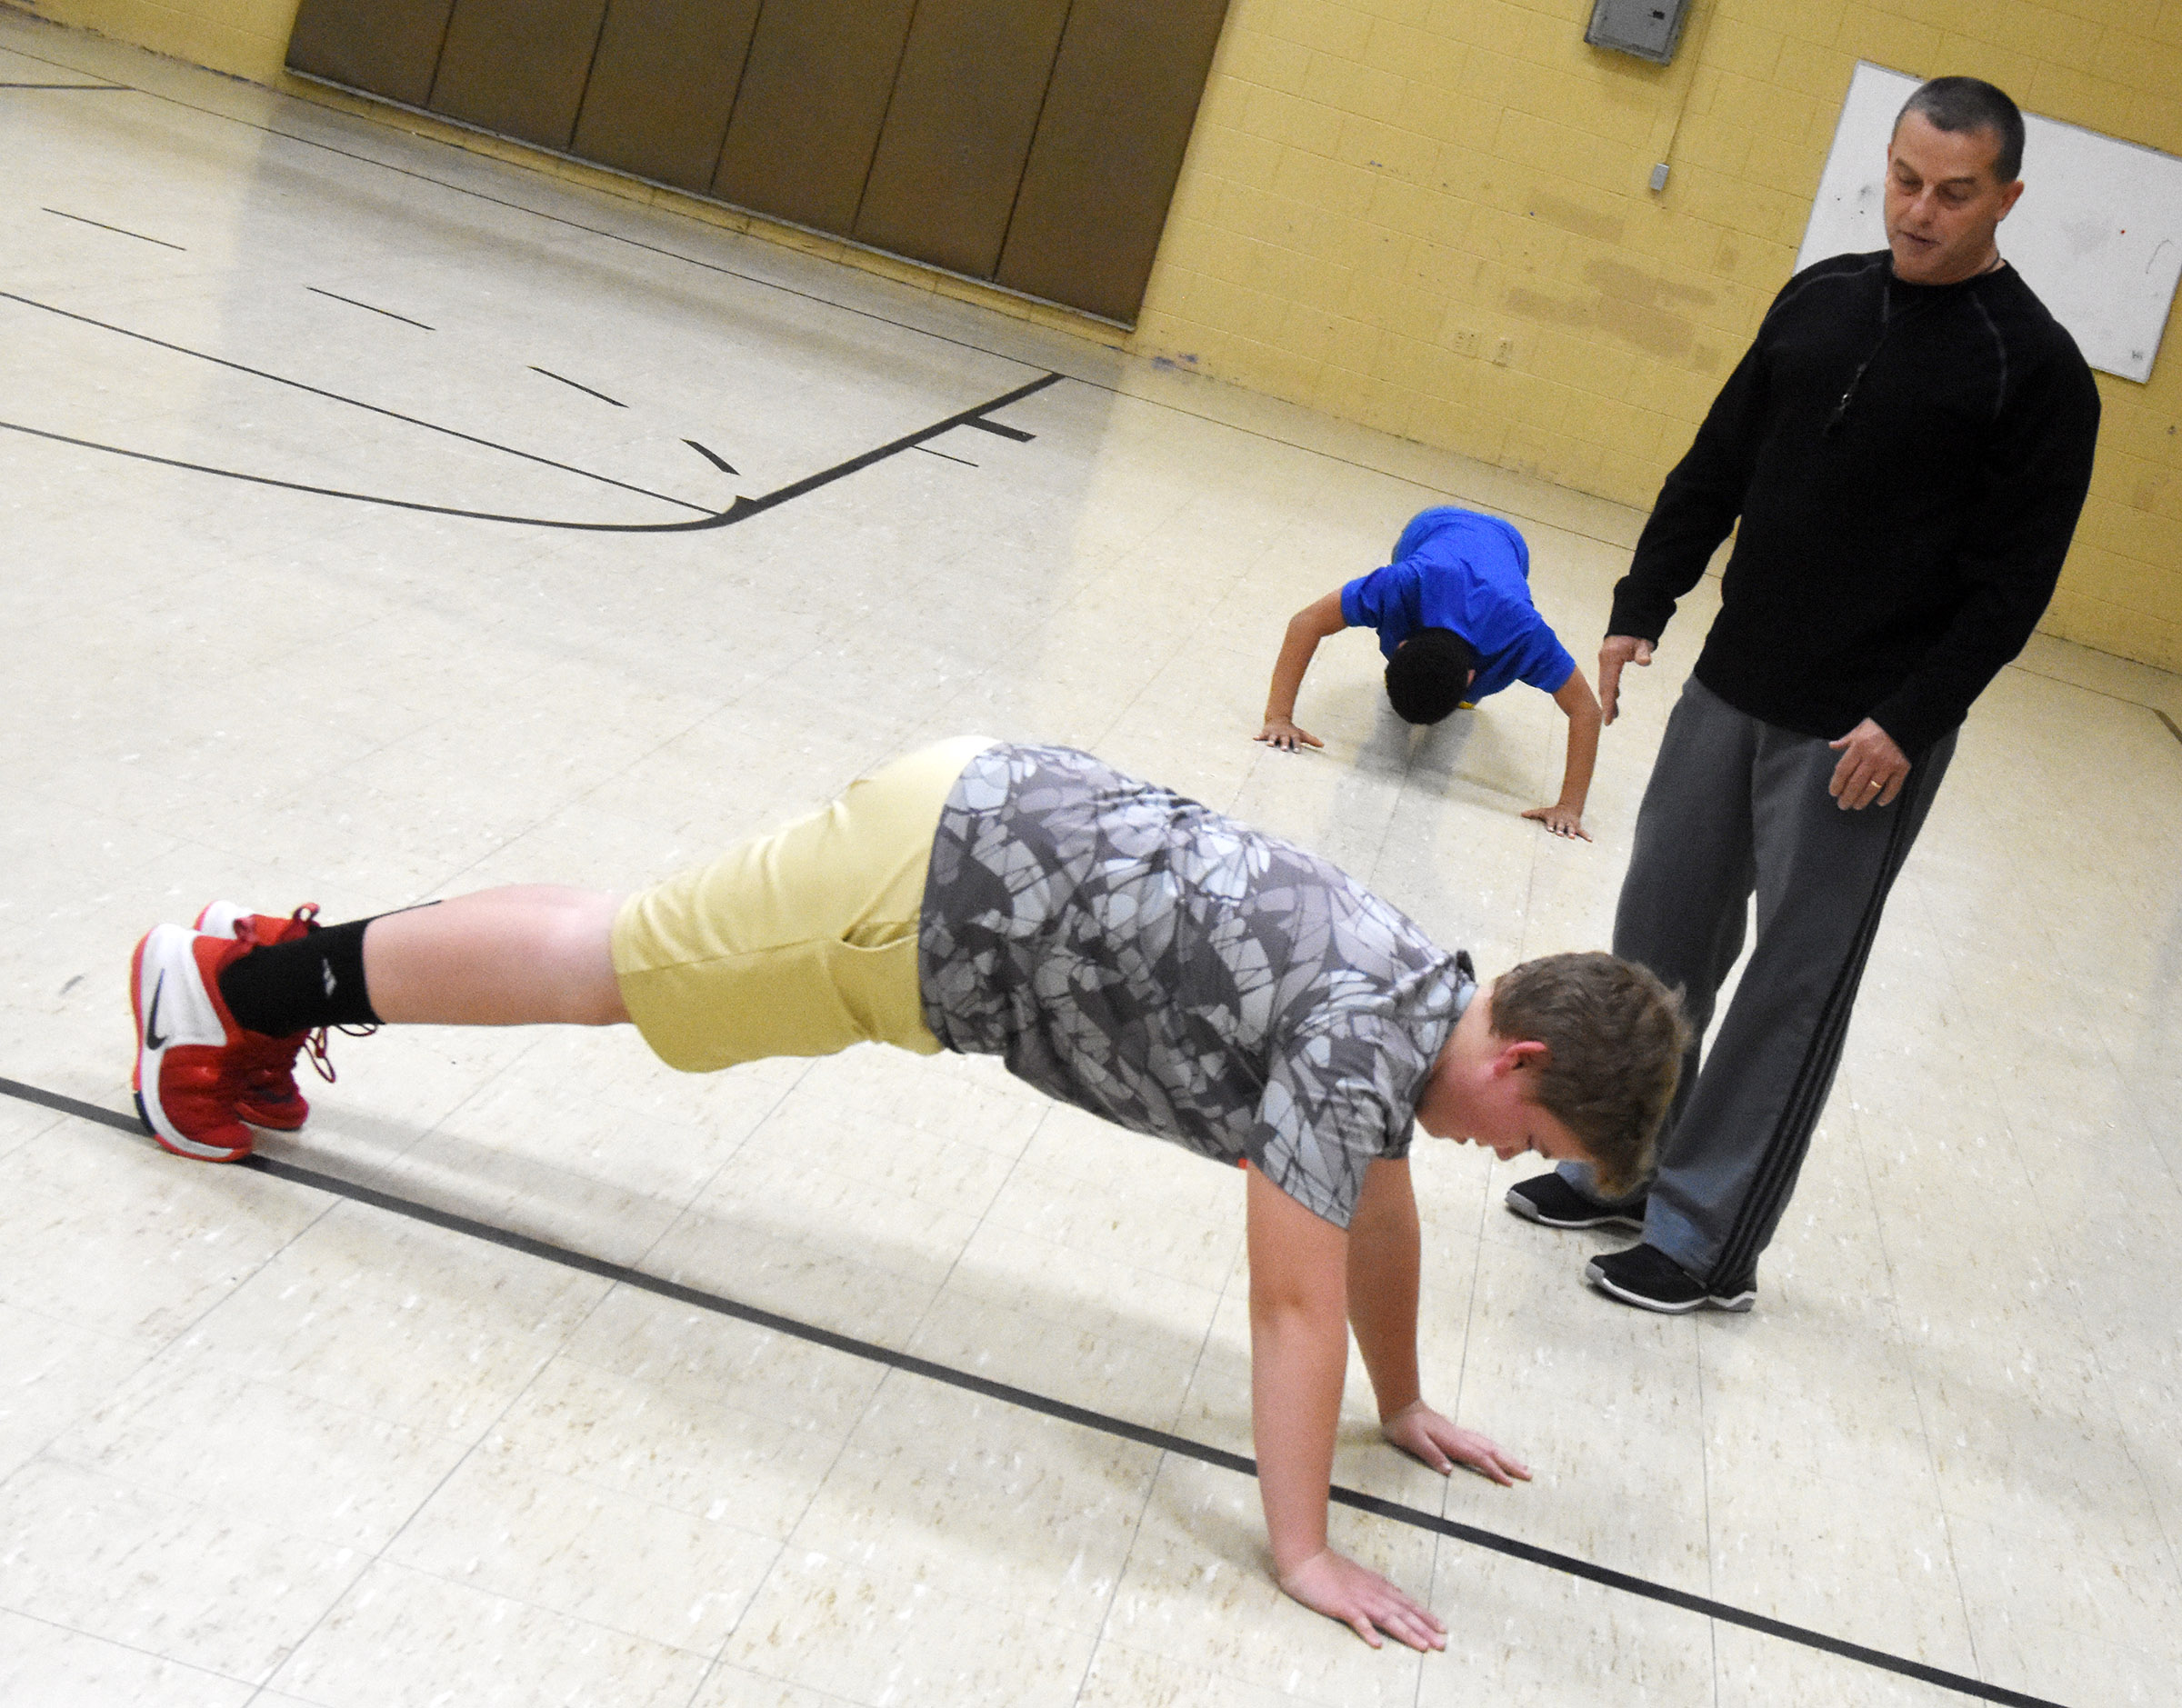 CMS substitute teacher Lynn Kearney leads students in a warmup exercise. From left are sixth-graders Ryan Grubbs and Tashaun Hart.